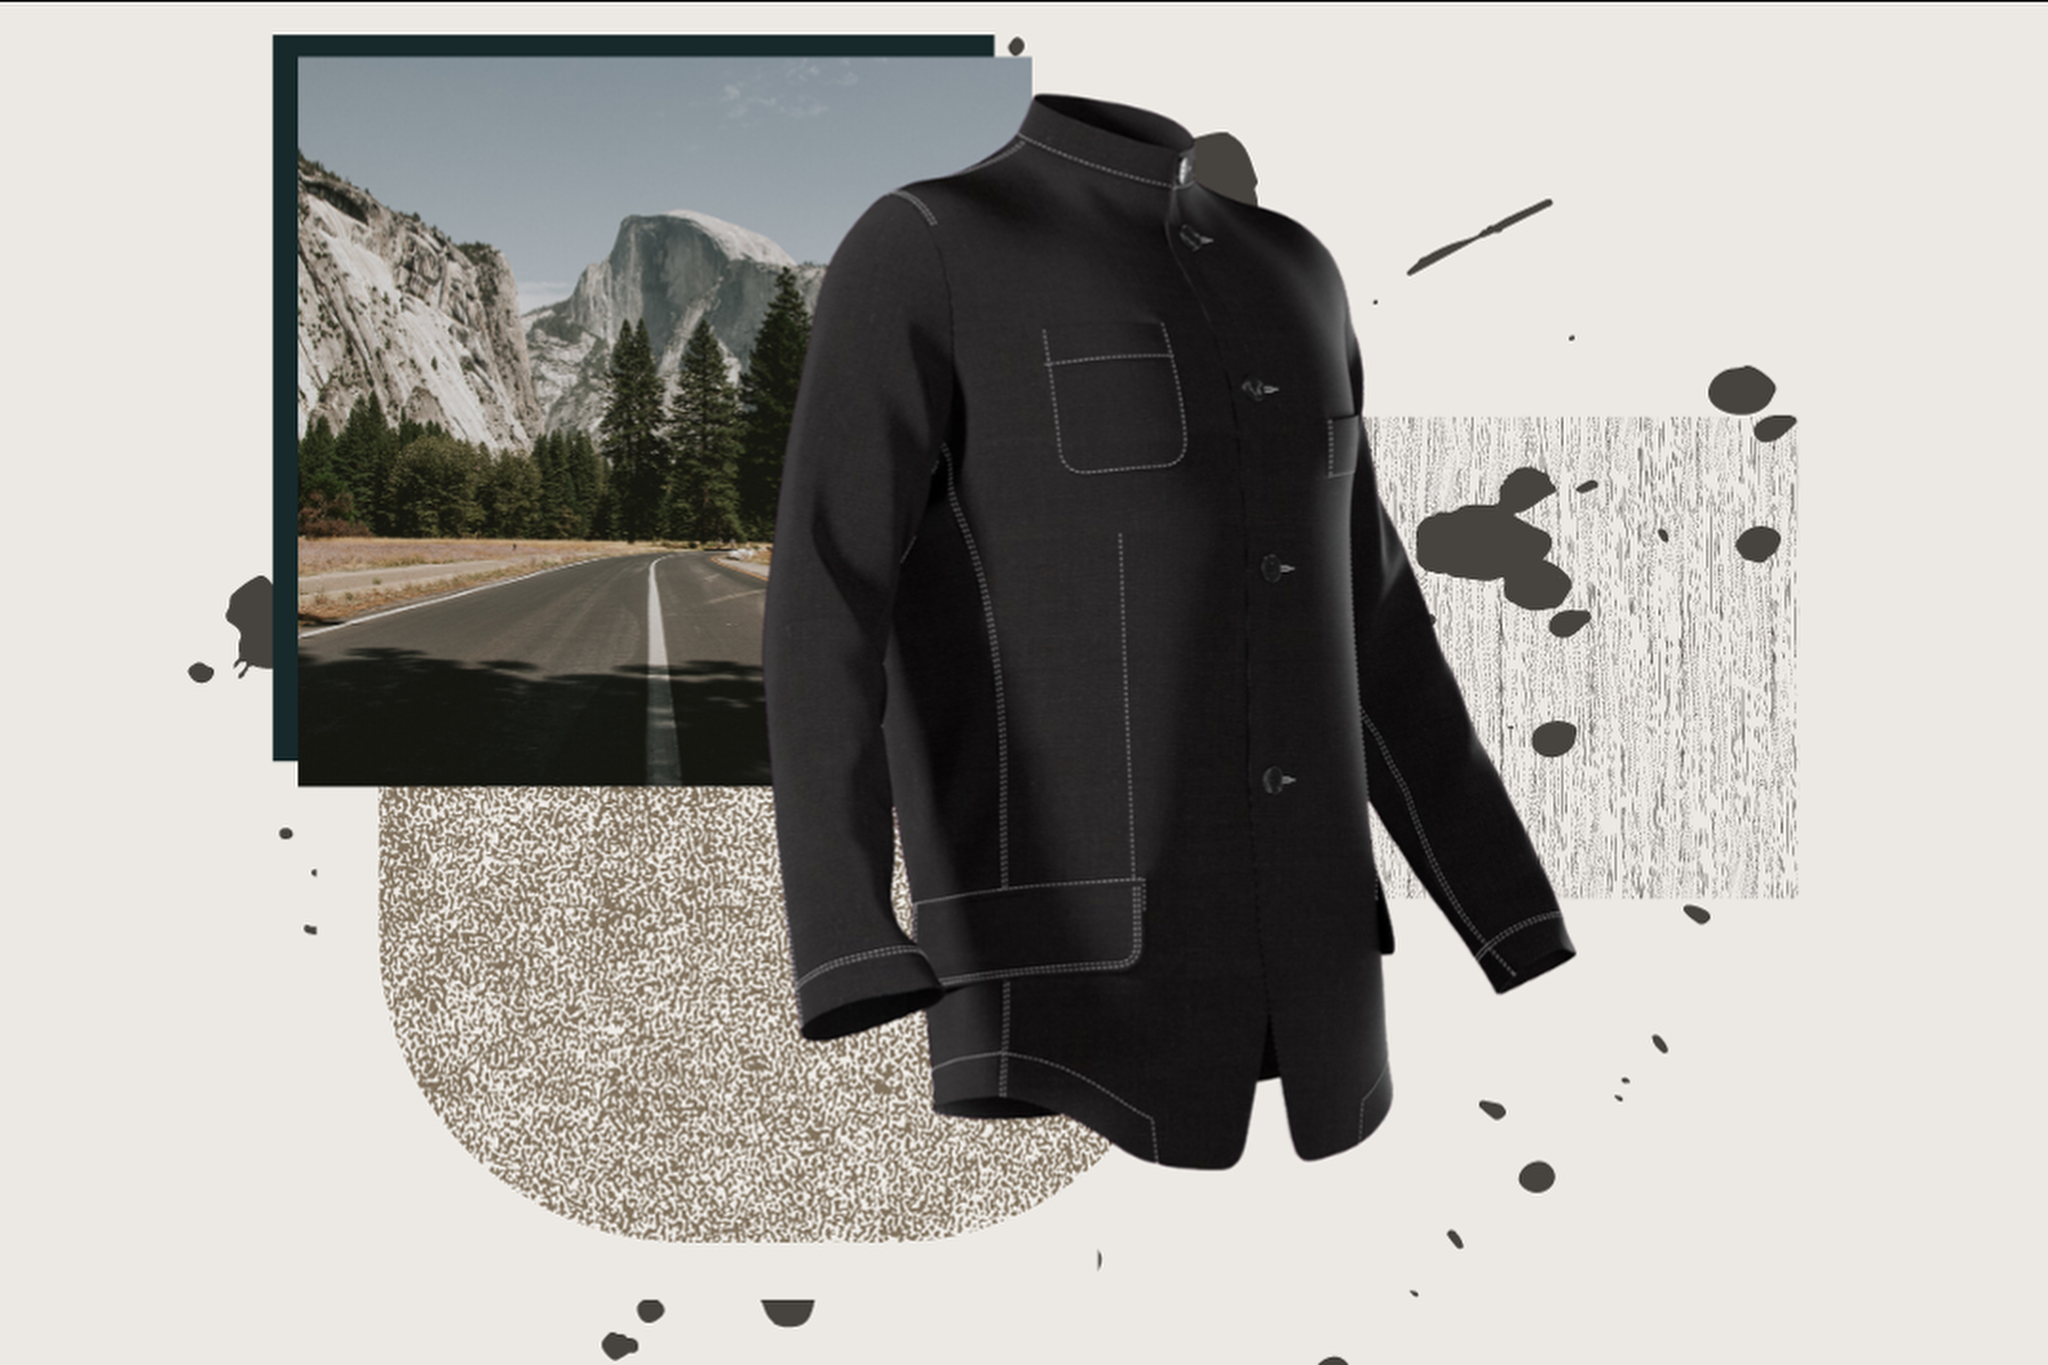 Pashko specializes in high-performance eco-friendly clothing.